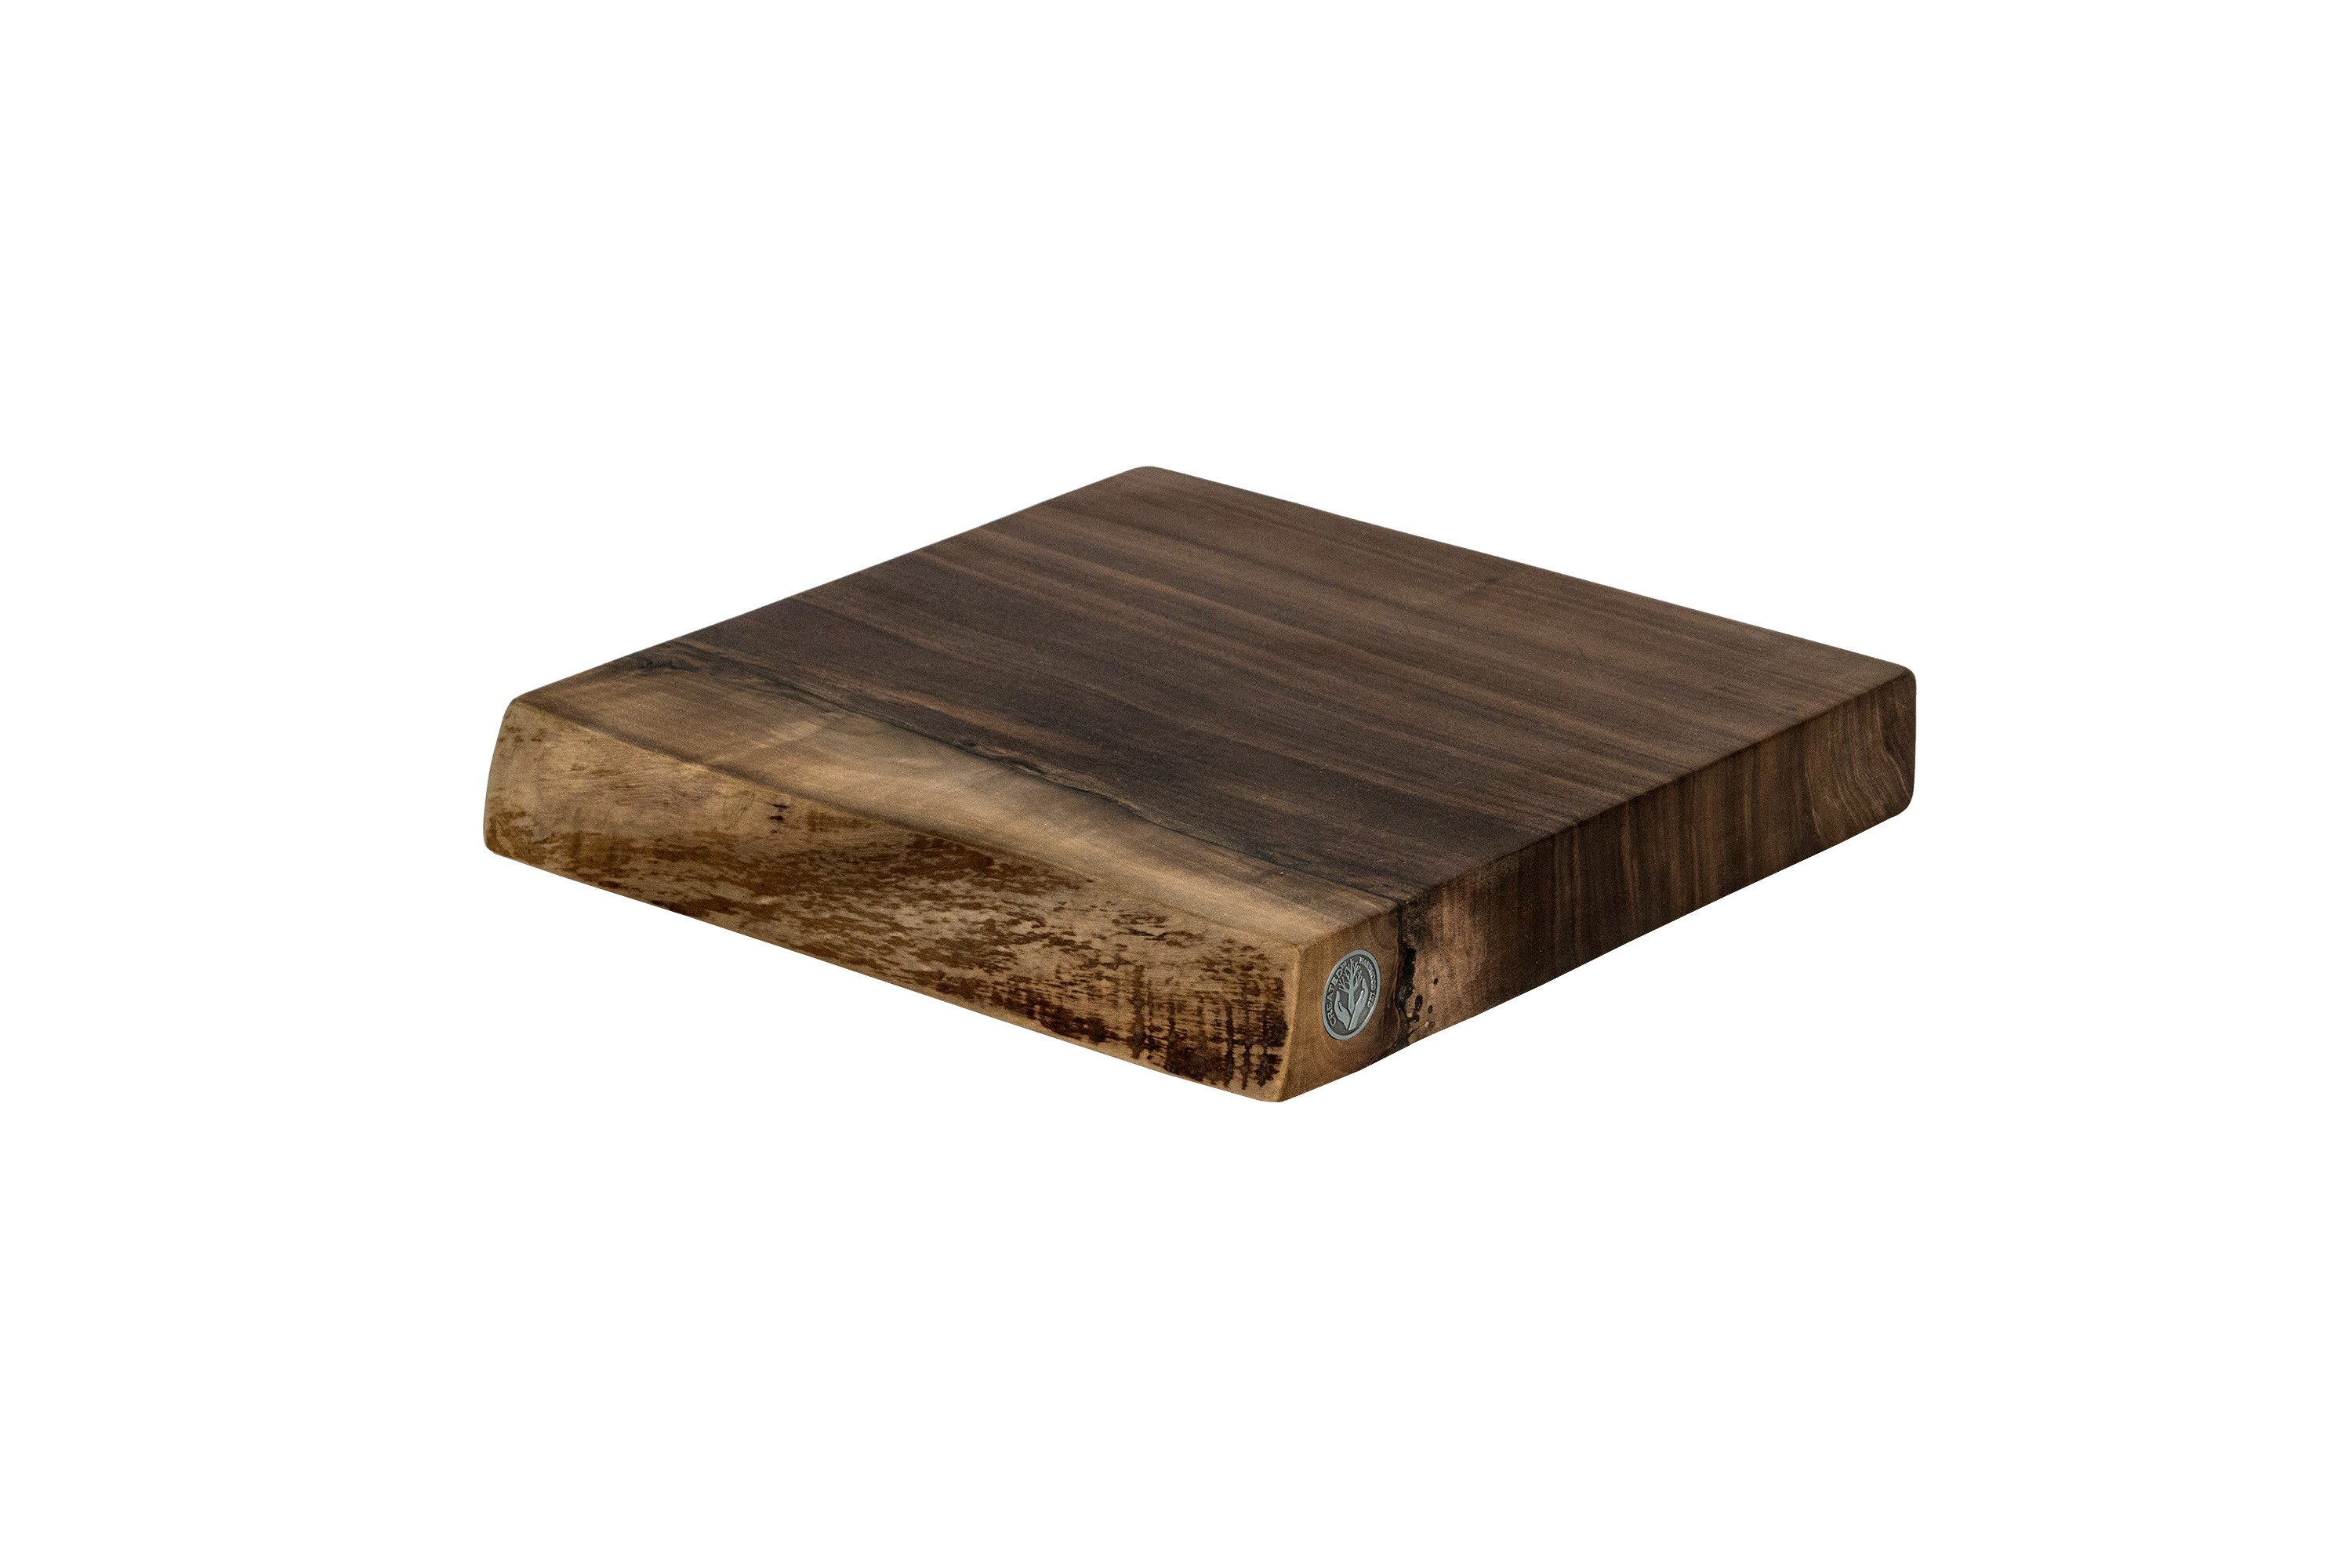 Live Edge Walnut Cutting Board #023 - 12